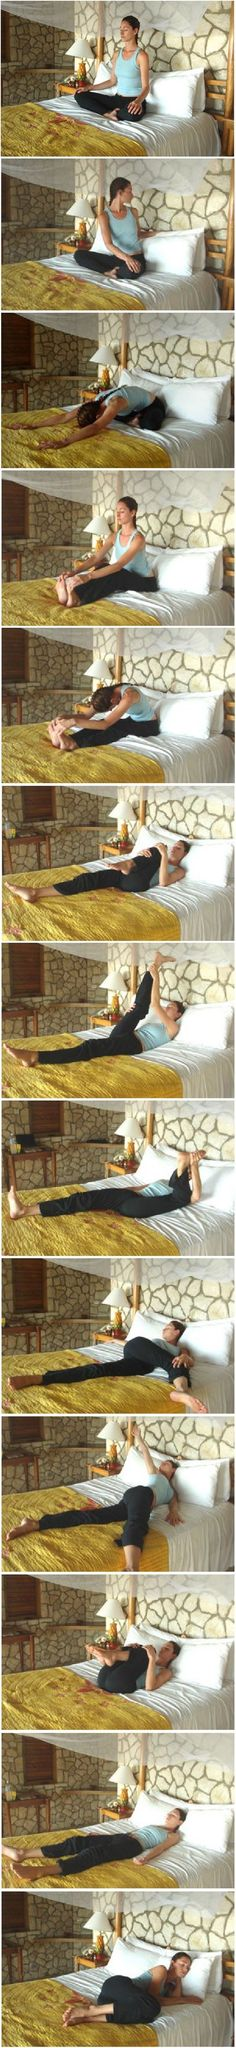 This is really the best pin of this bedtime yoga routine, with all the pictures in a row instead of at different pages! Btw, it totally helps you sleep better! Bedtime Yoga from womenshealthmag.com Love this! Doing it!